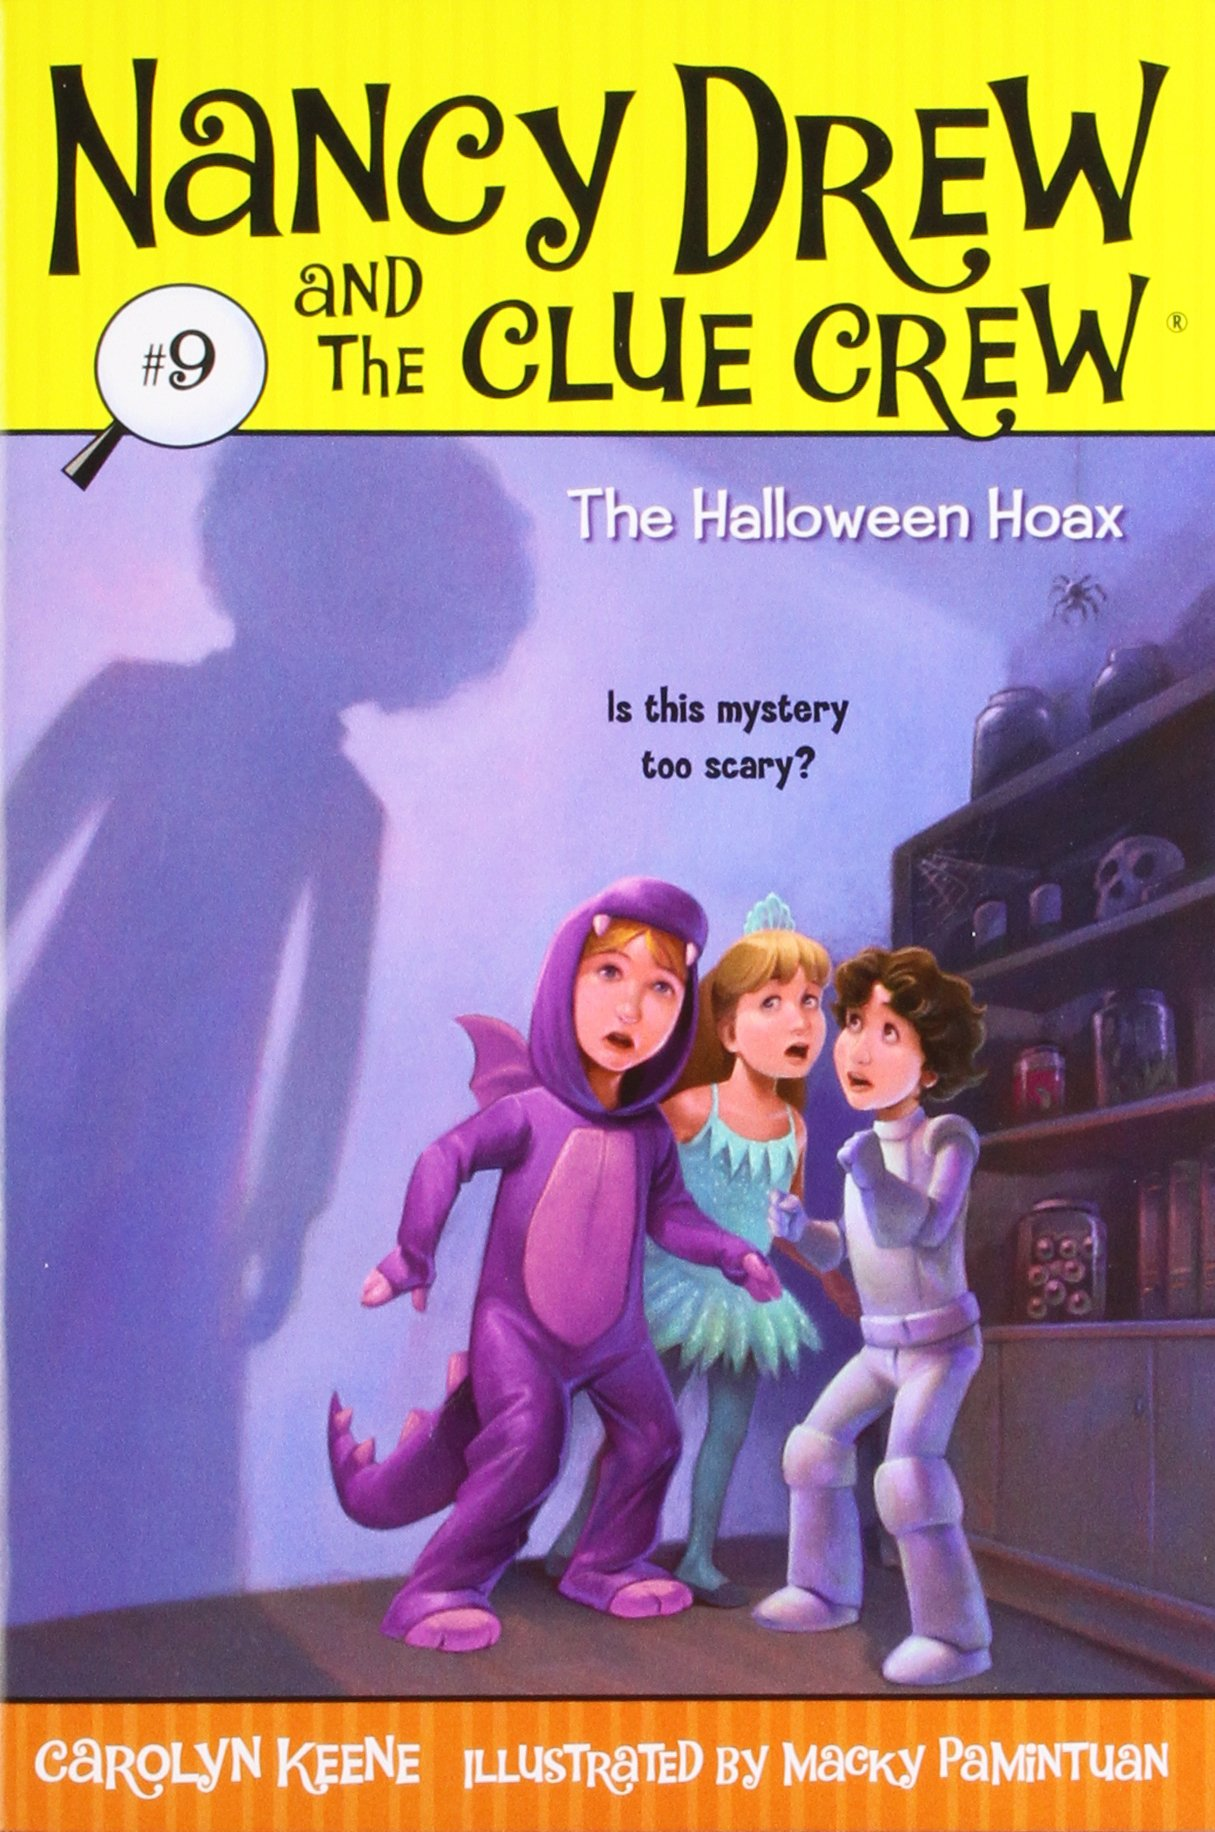 amazoncom the halloween hoax nancy drew and the clue crew 9 carolyn keene macky pamintuan books